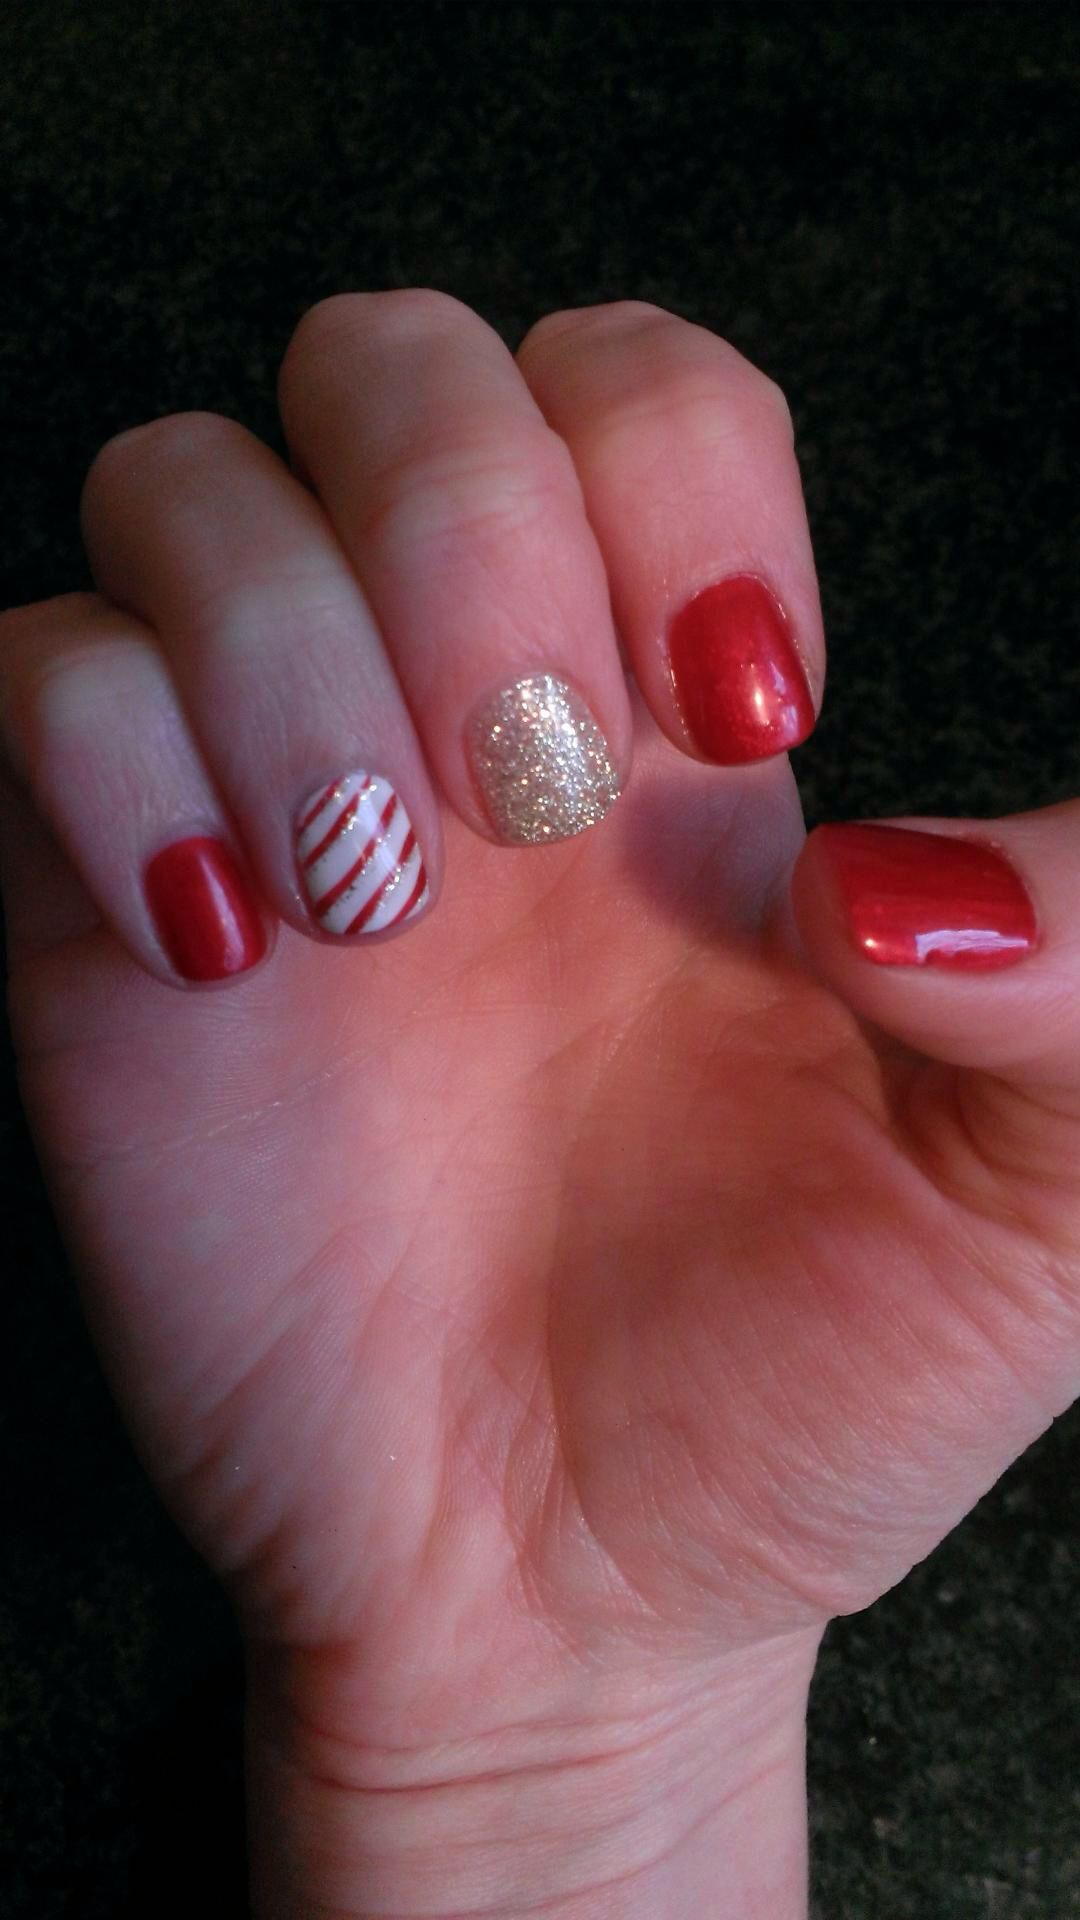 Candy Cane Nail Art Christmas Nails Design Glitter Opi Gelcolor Mariah Carey In My Santa Suit Favorite Ornament Shellac